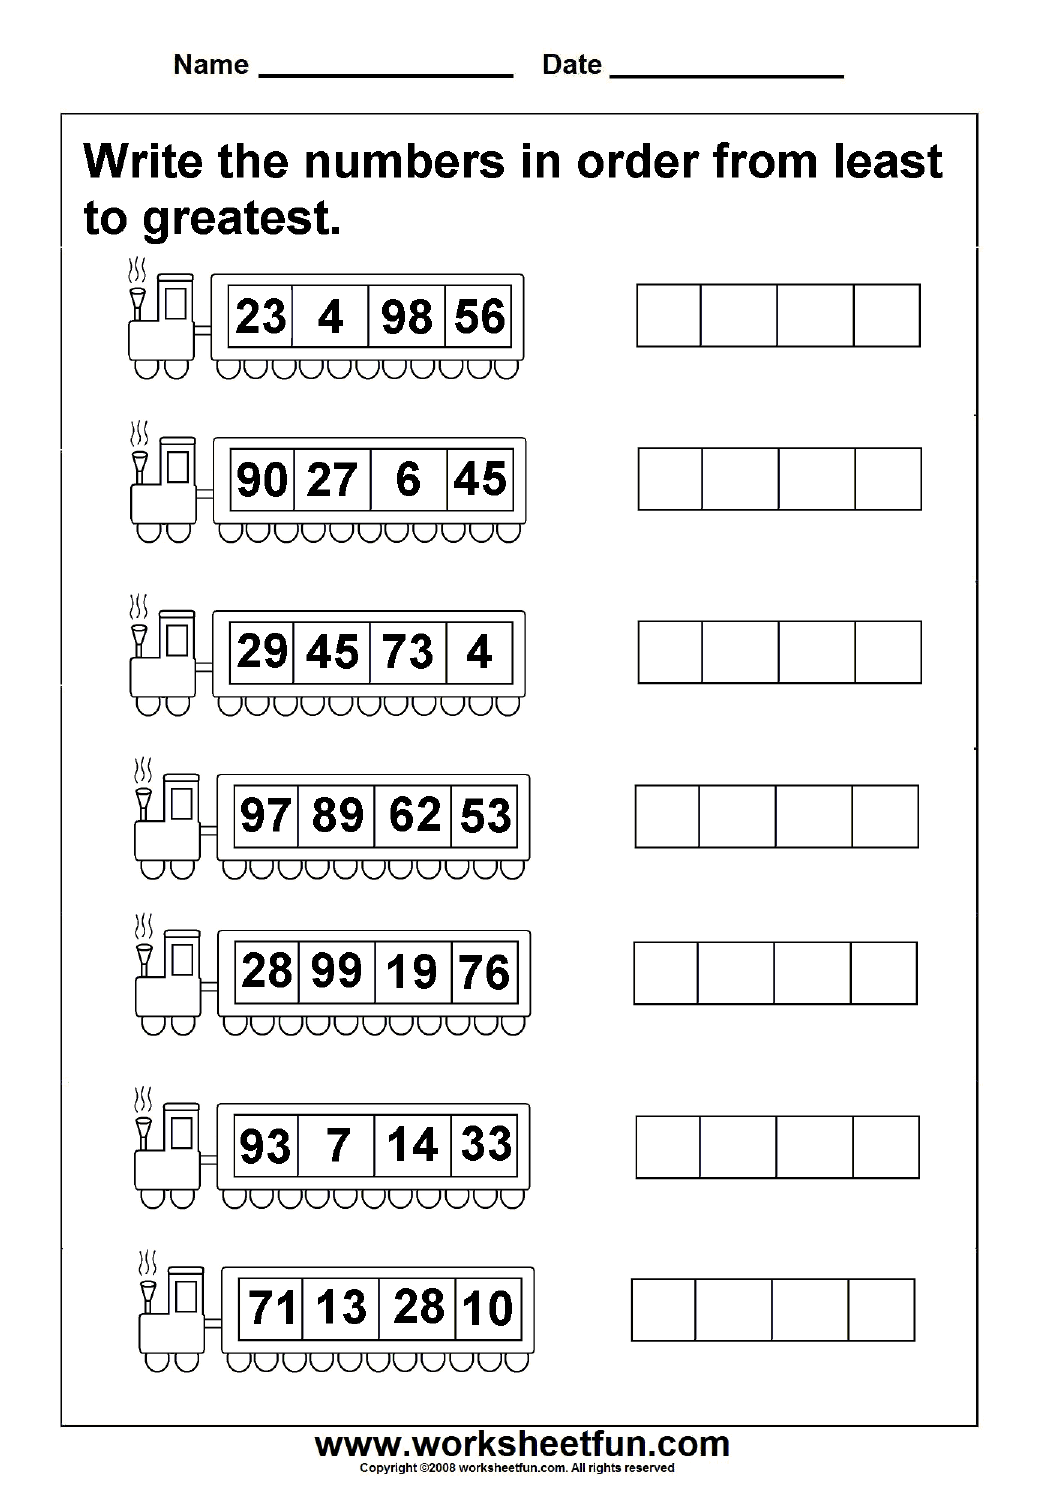 hight resolution of Kindergarten Math Ascending Order Worksheets - Preschool Worksheet Gallery